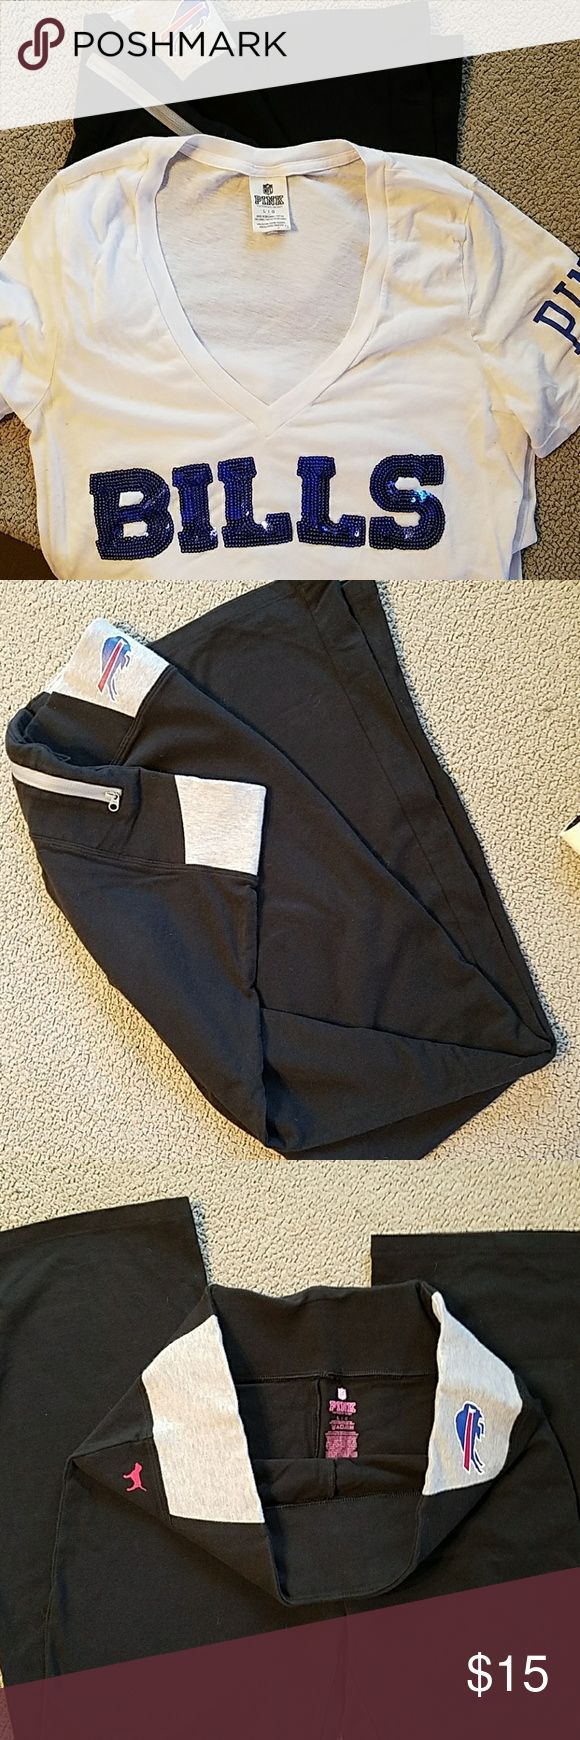 "NFL PINK by Victoria Secret Bills NFL Bills PINK by Victoria Secret with 32"" inseam. Worn once. Black with zip pocket in back. I would throw in the white bills T-shirt for free! PINK Victoria's Secret Pants"